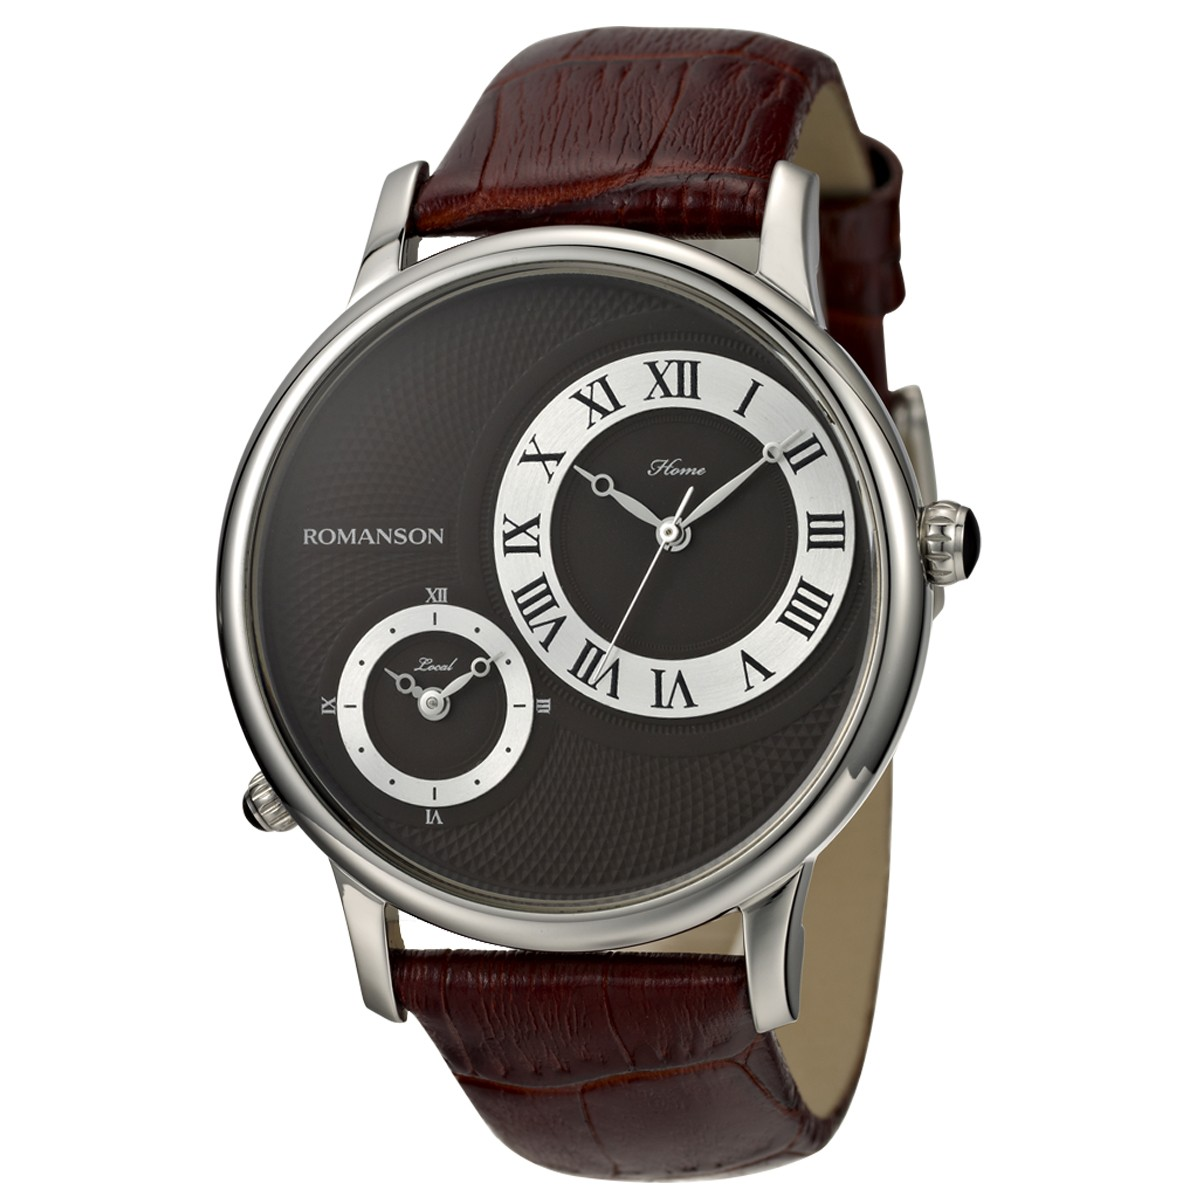 Where To Buy Bertucci Watches